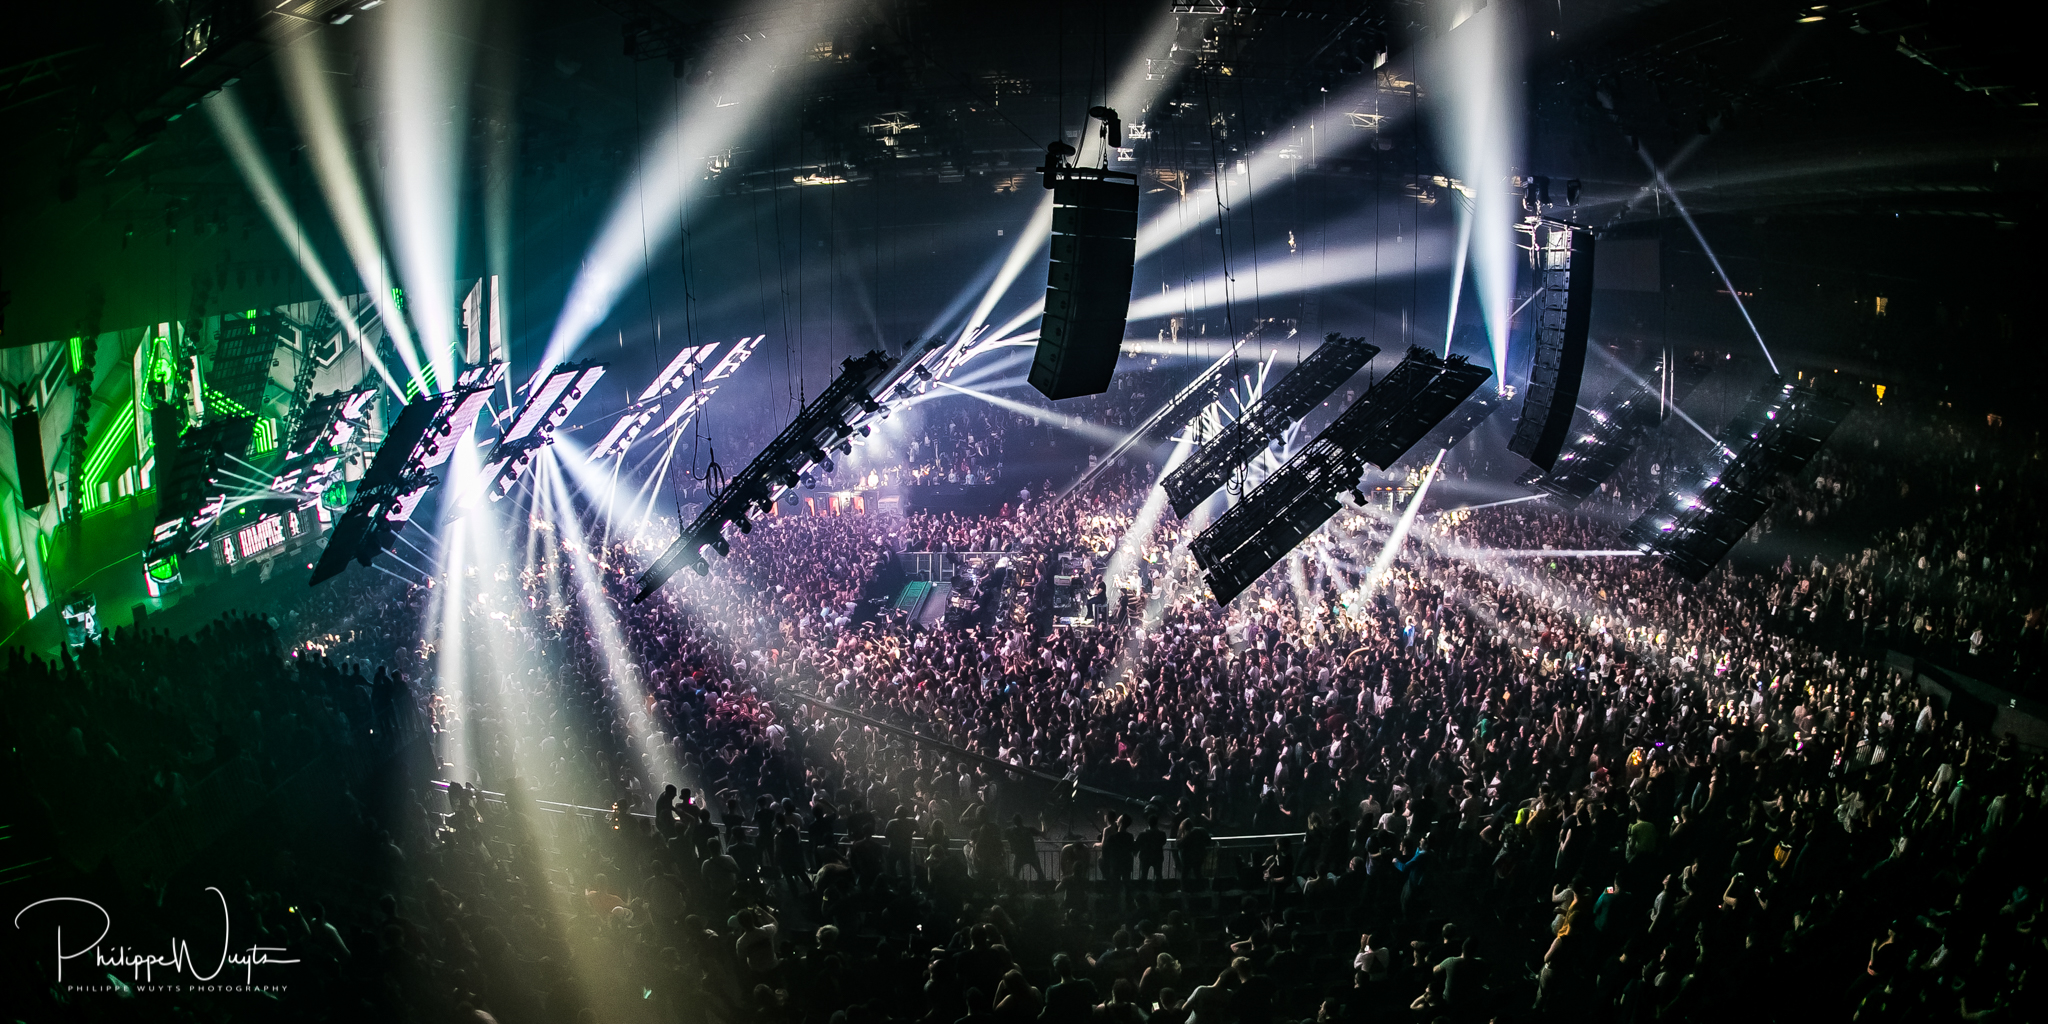 2018-03-03 - Rampage 2018 - Day II by Philippe Wuyts - 072.jpg